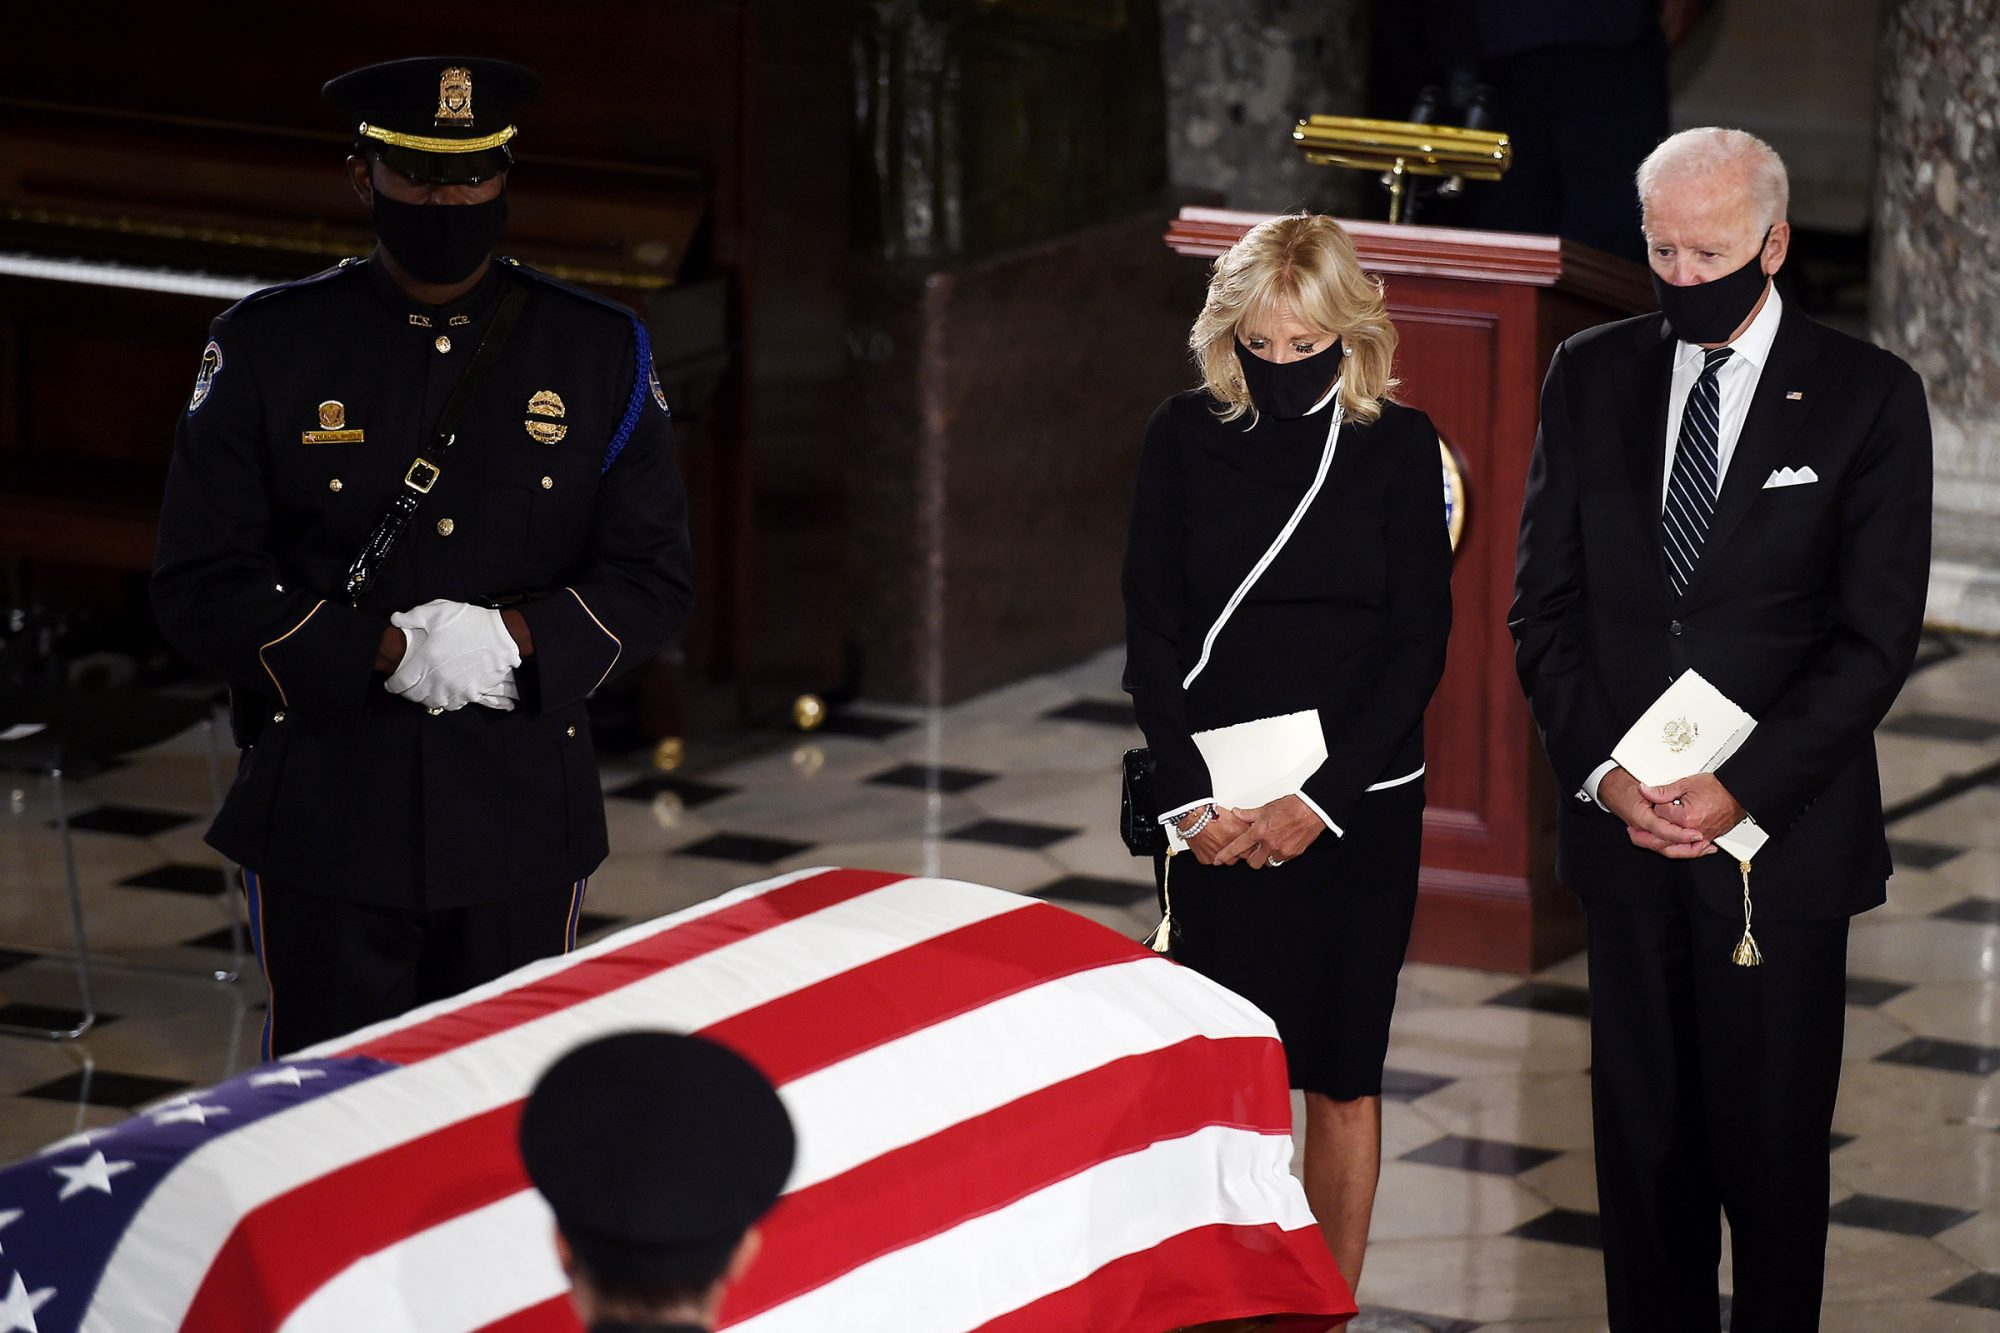 Democratic Presidential nominee Joe Biden and his wife Dr. Jill Biden pay their respects in front of the American flag draped casket of U.S. Supreme Court Associate Justice Ruth Bader Ginsburg as she lies in state at the U.S. Capitol on September 25, 2020 in Washington, DC